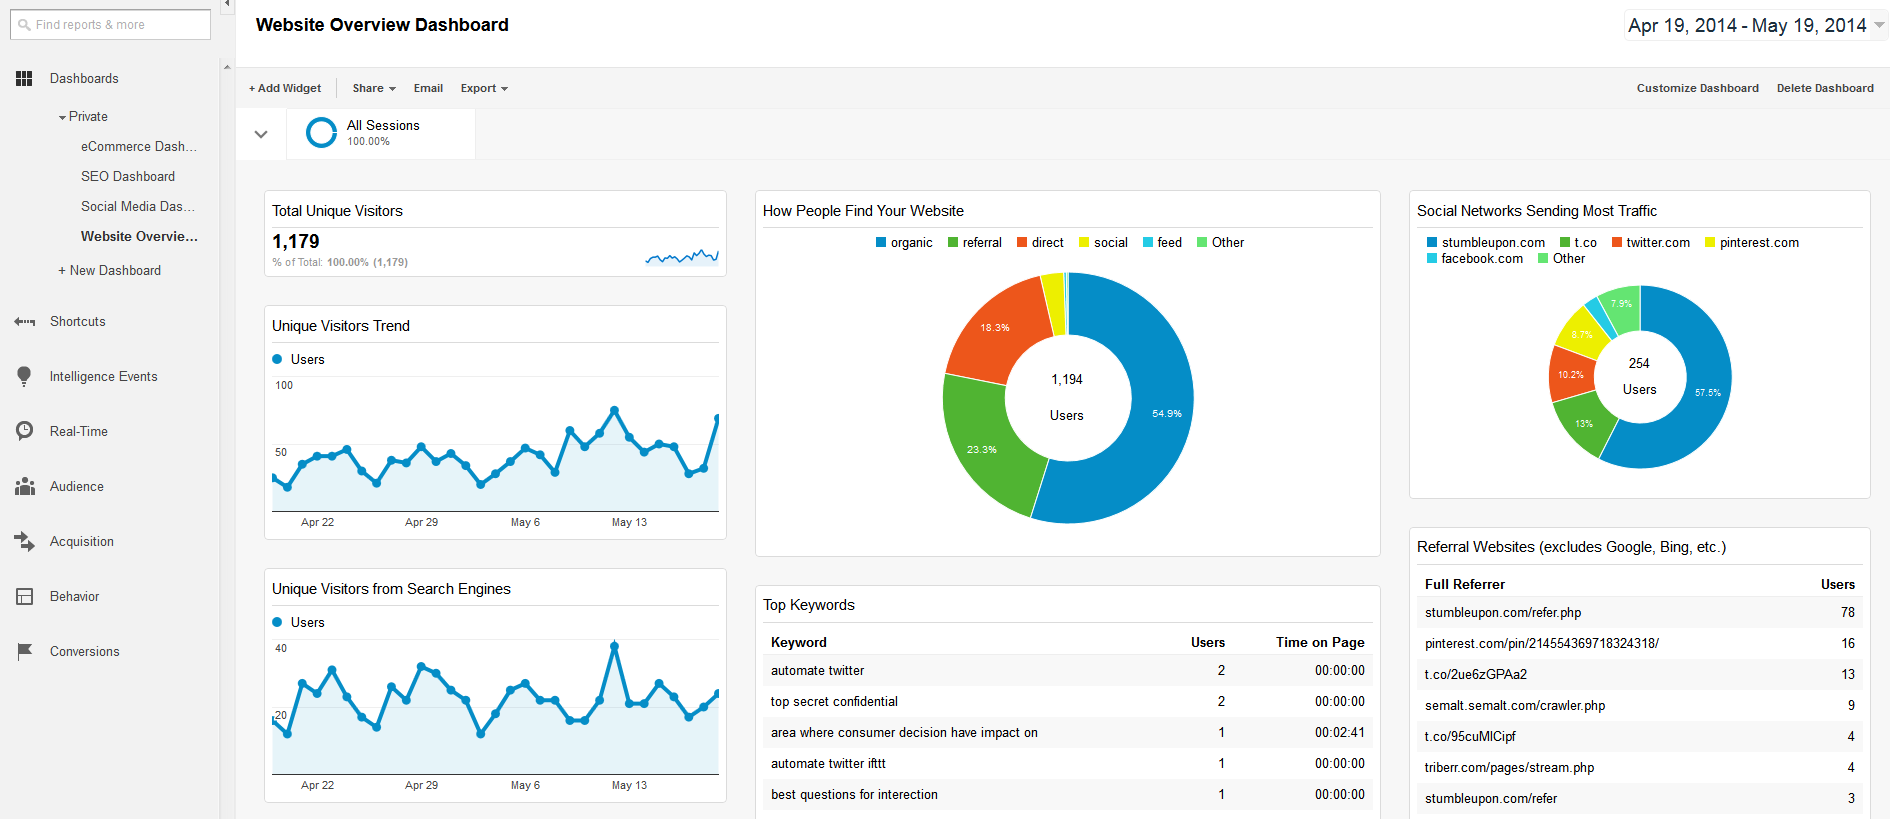 Website Overview Dashboard - Google Analytics